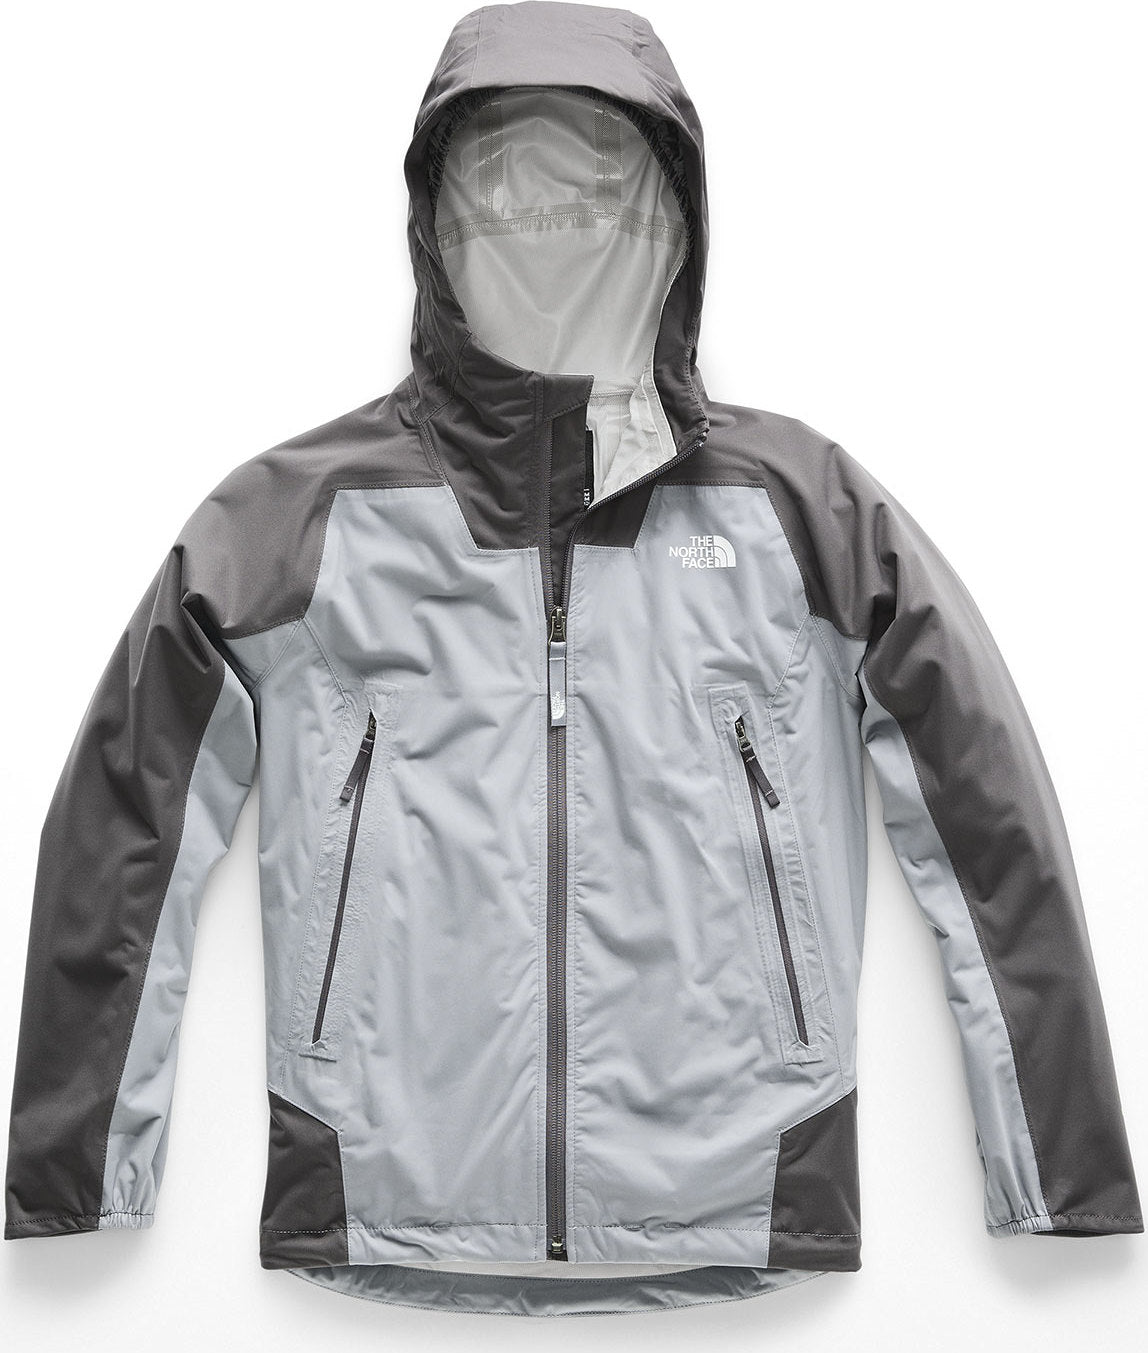 4c5e949eb96 The North Face Boy s Allproof Stretch Jacket